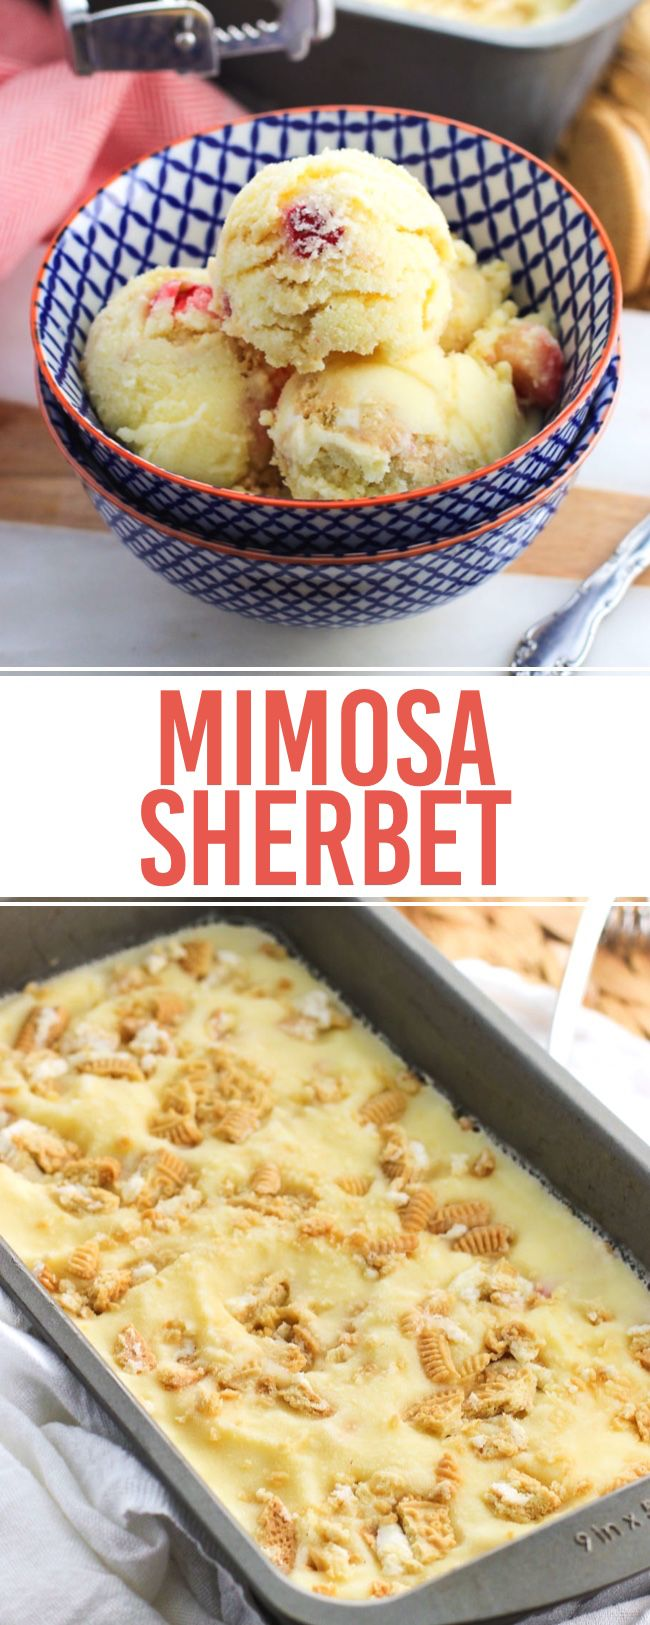 This mimosa sherbet is a dessert version of a favorite brunch cocktail. Creamy sherbet is flavored with orange juice and champagne and swirled with strawberries and vanilla cookies.